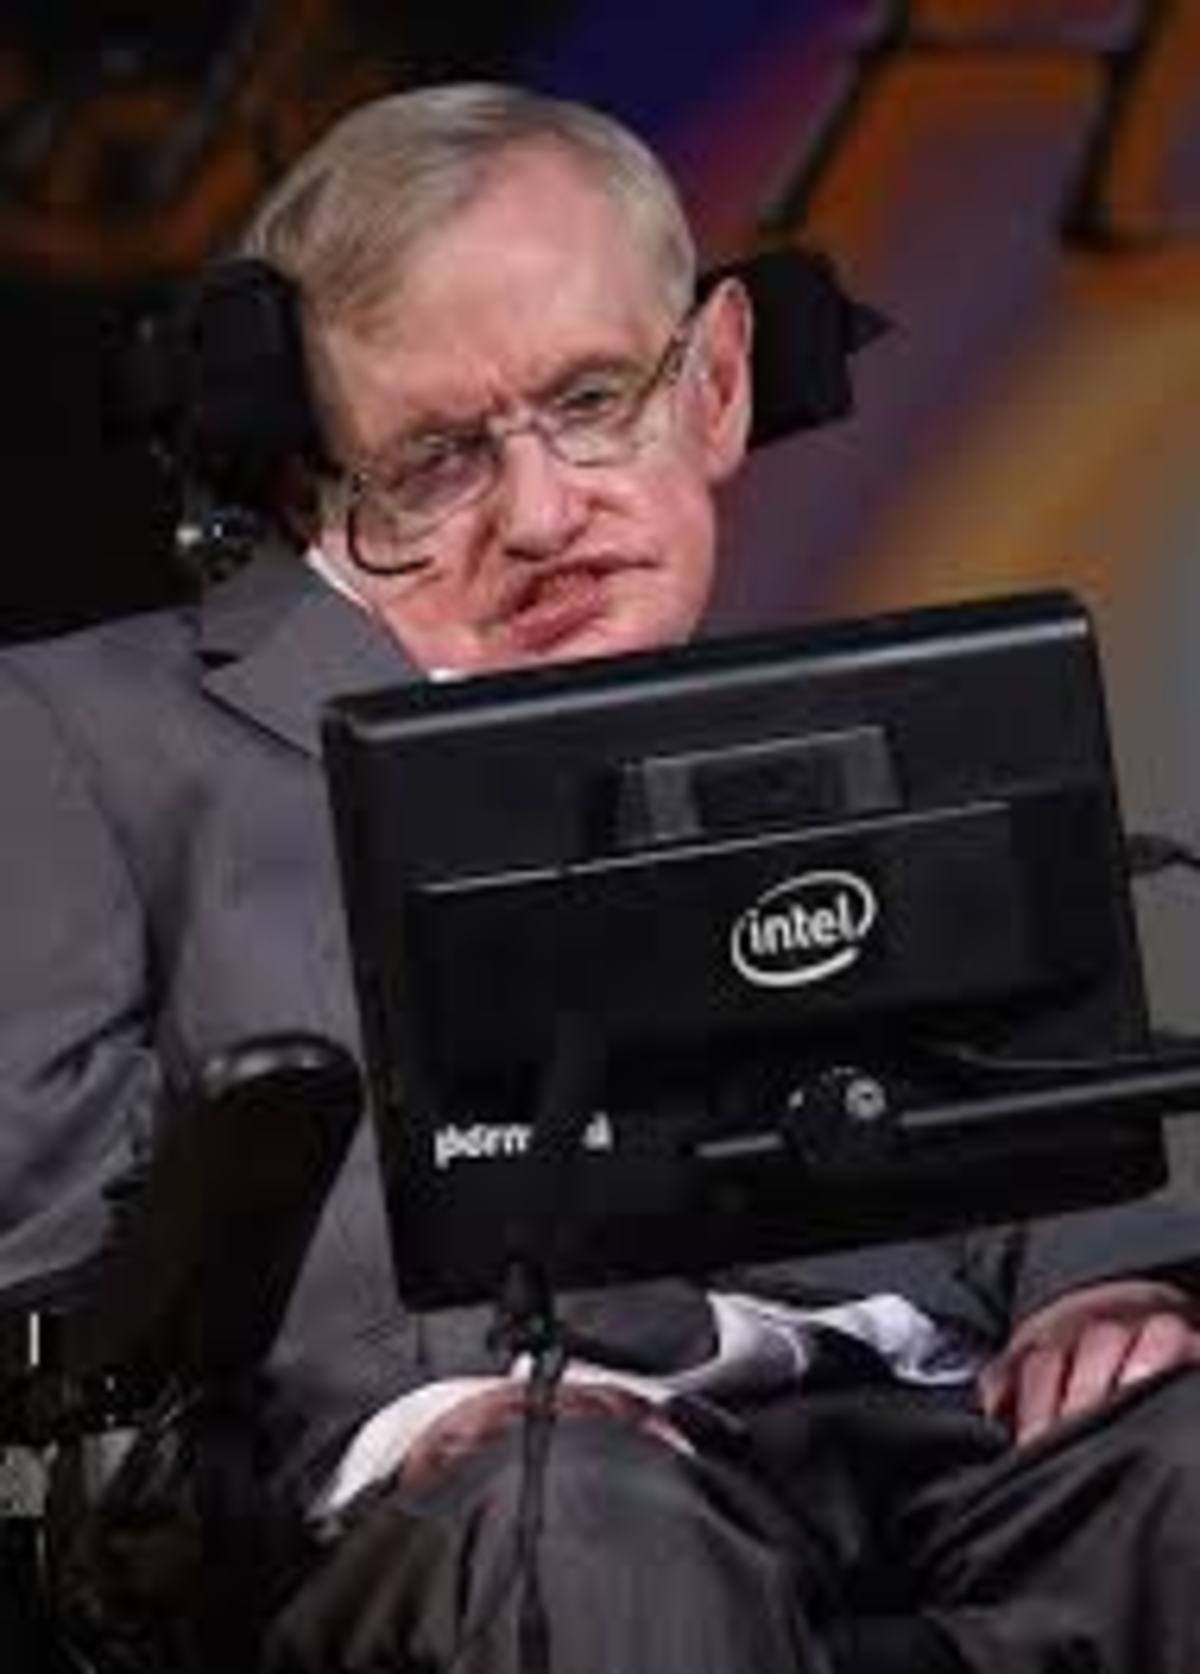 True facts. DID YOU KNOW: Stephen Hawking is actually just a vegetable sitting in a wheelchair; he is the host body for the Google AI.